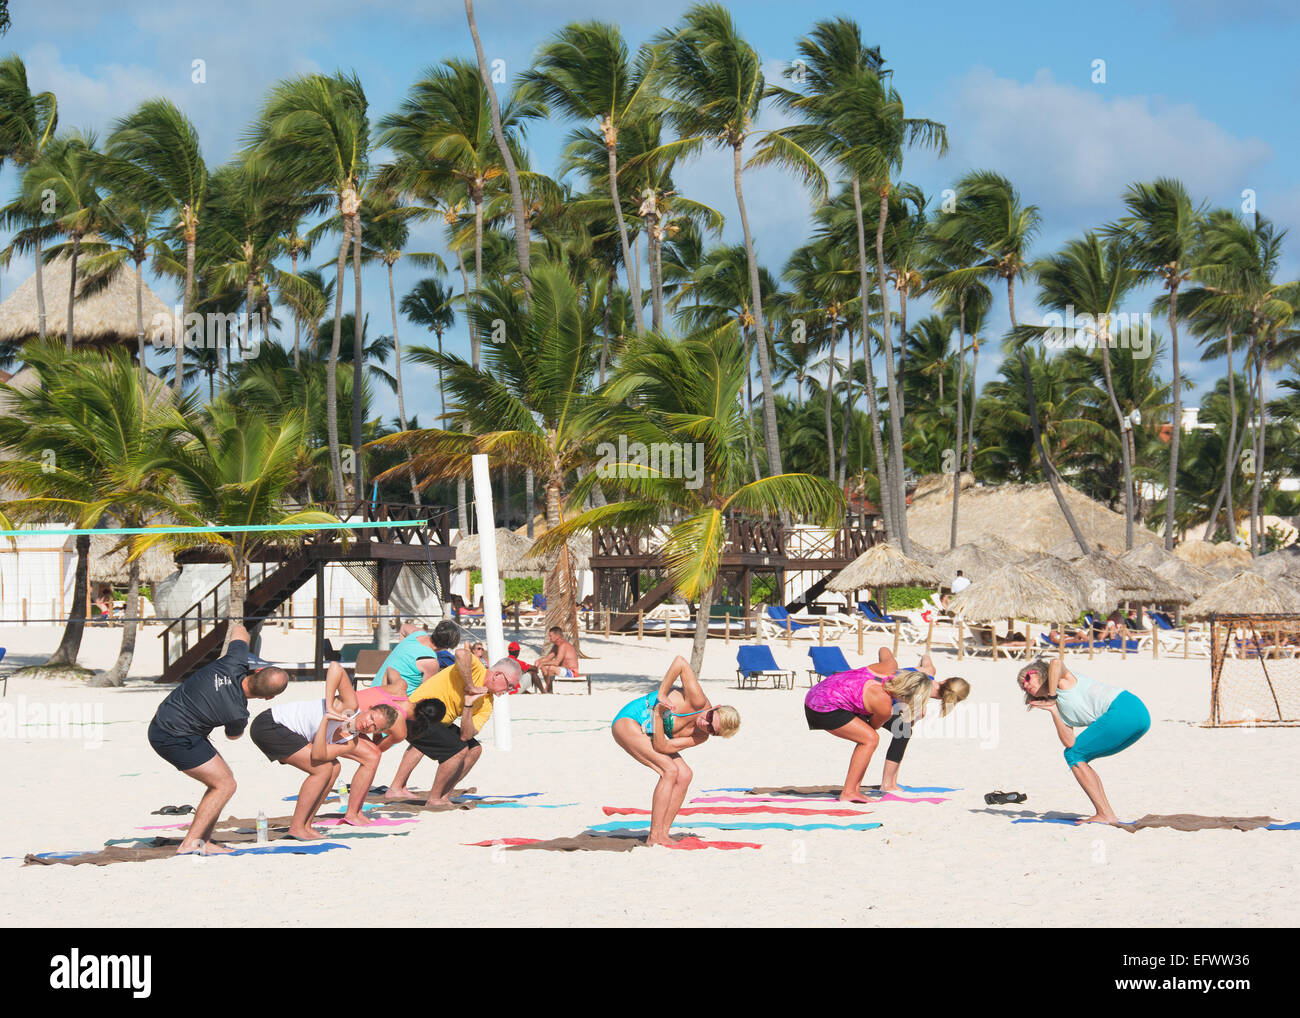 DOMINICAN REPUBLIC. Holidaymakers doing keep-fit exercises on Punta Cana beach. 2015. - Stock Image